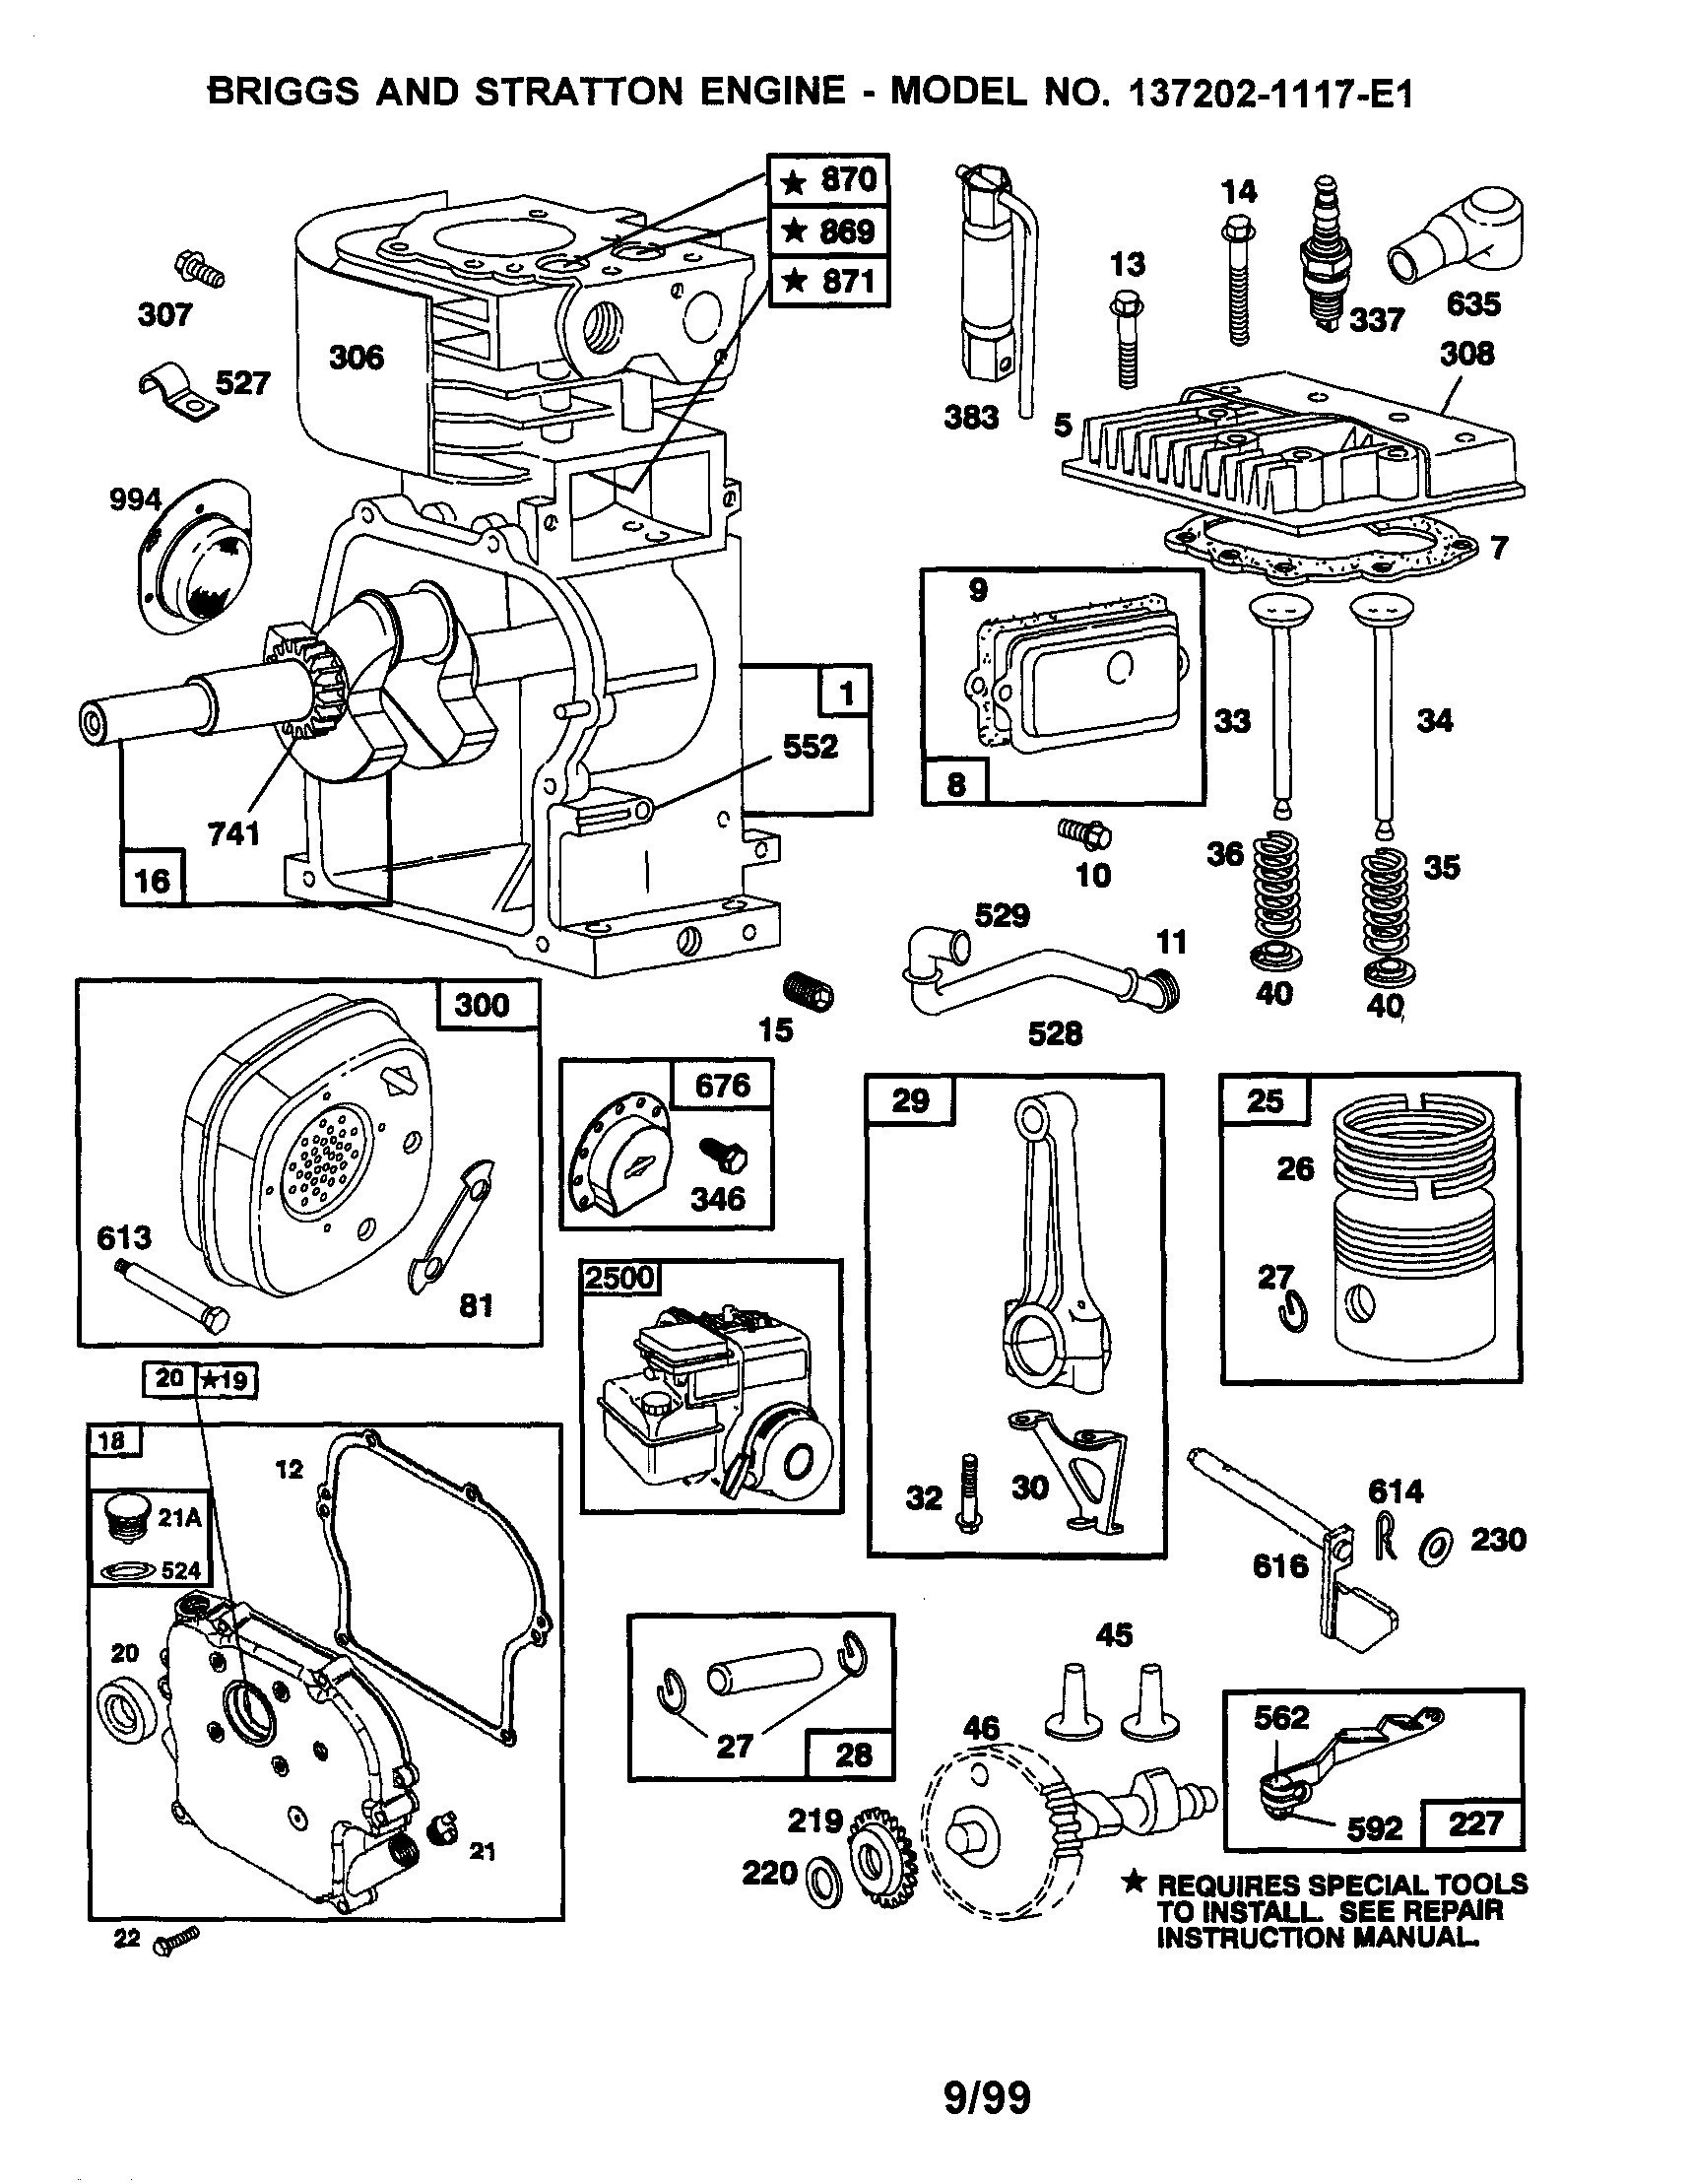 Audi a4 quattro drivetrain diagram audi wiring diagrams instructions briggs stratton parts manual array briggs and stratton parts schematics wire center u2022 rh 140 fandeluxe Choice Image